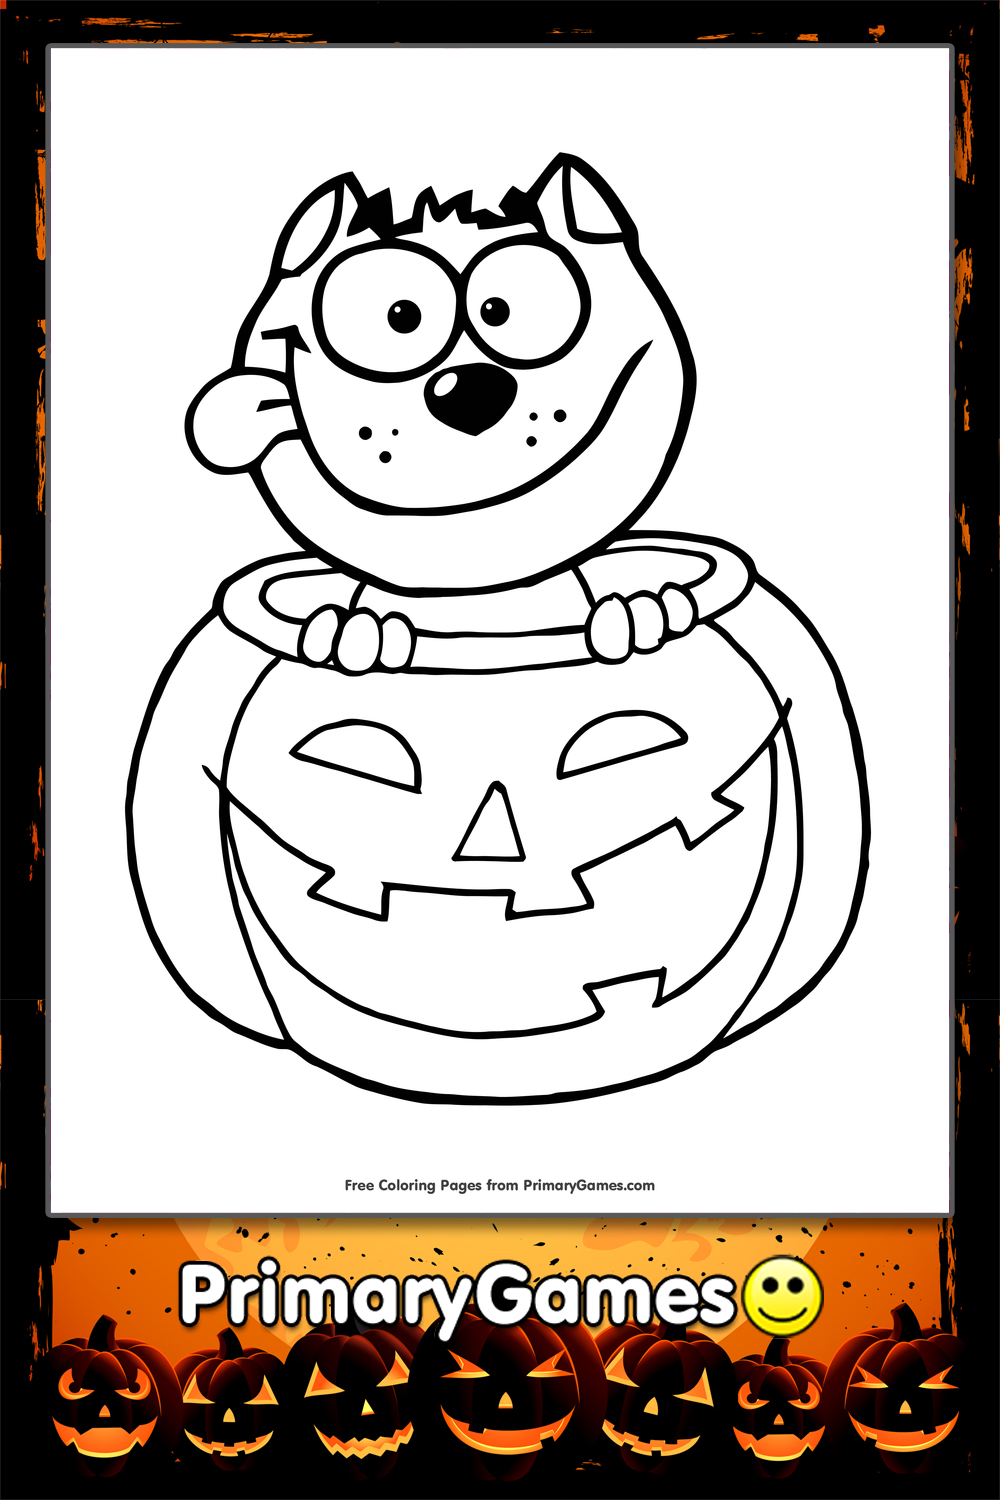 happy halloween coloring pages games - photo#29